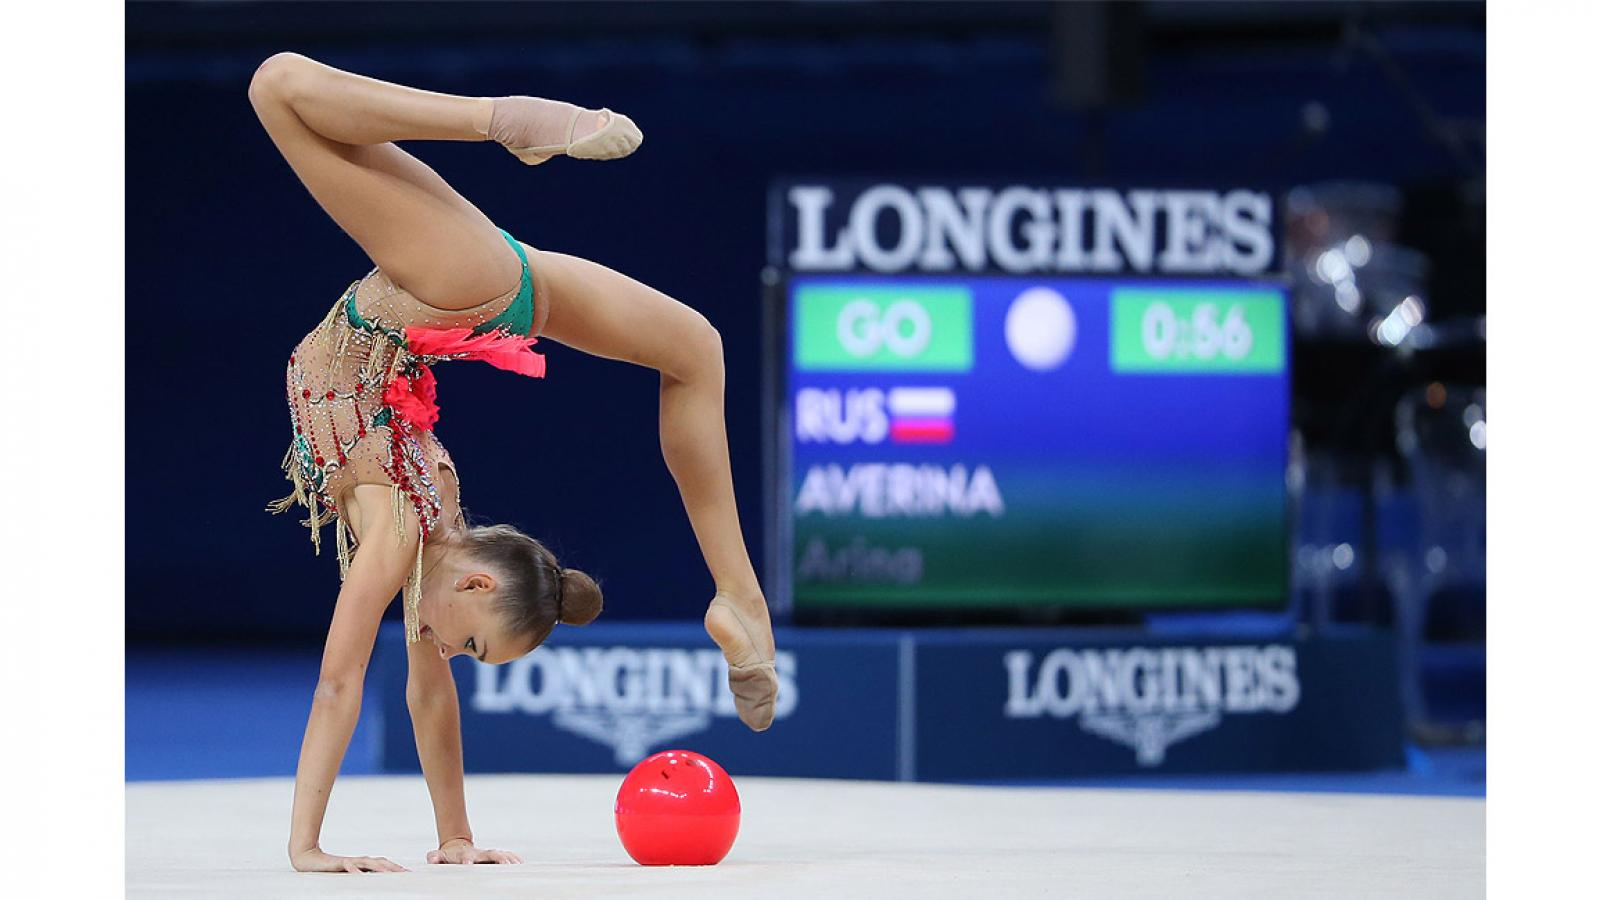 Arina and Dina Averina; Ambassadors of Elegance